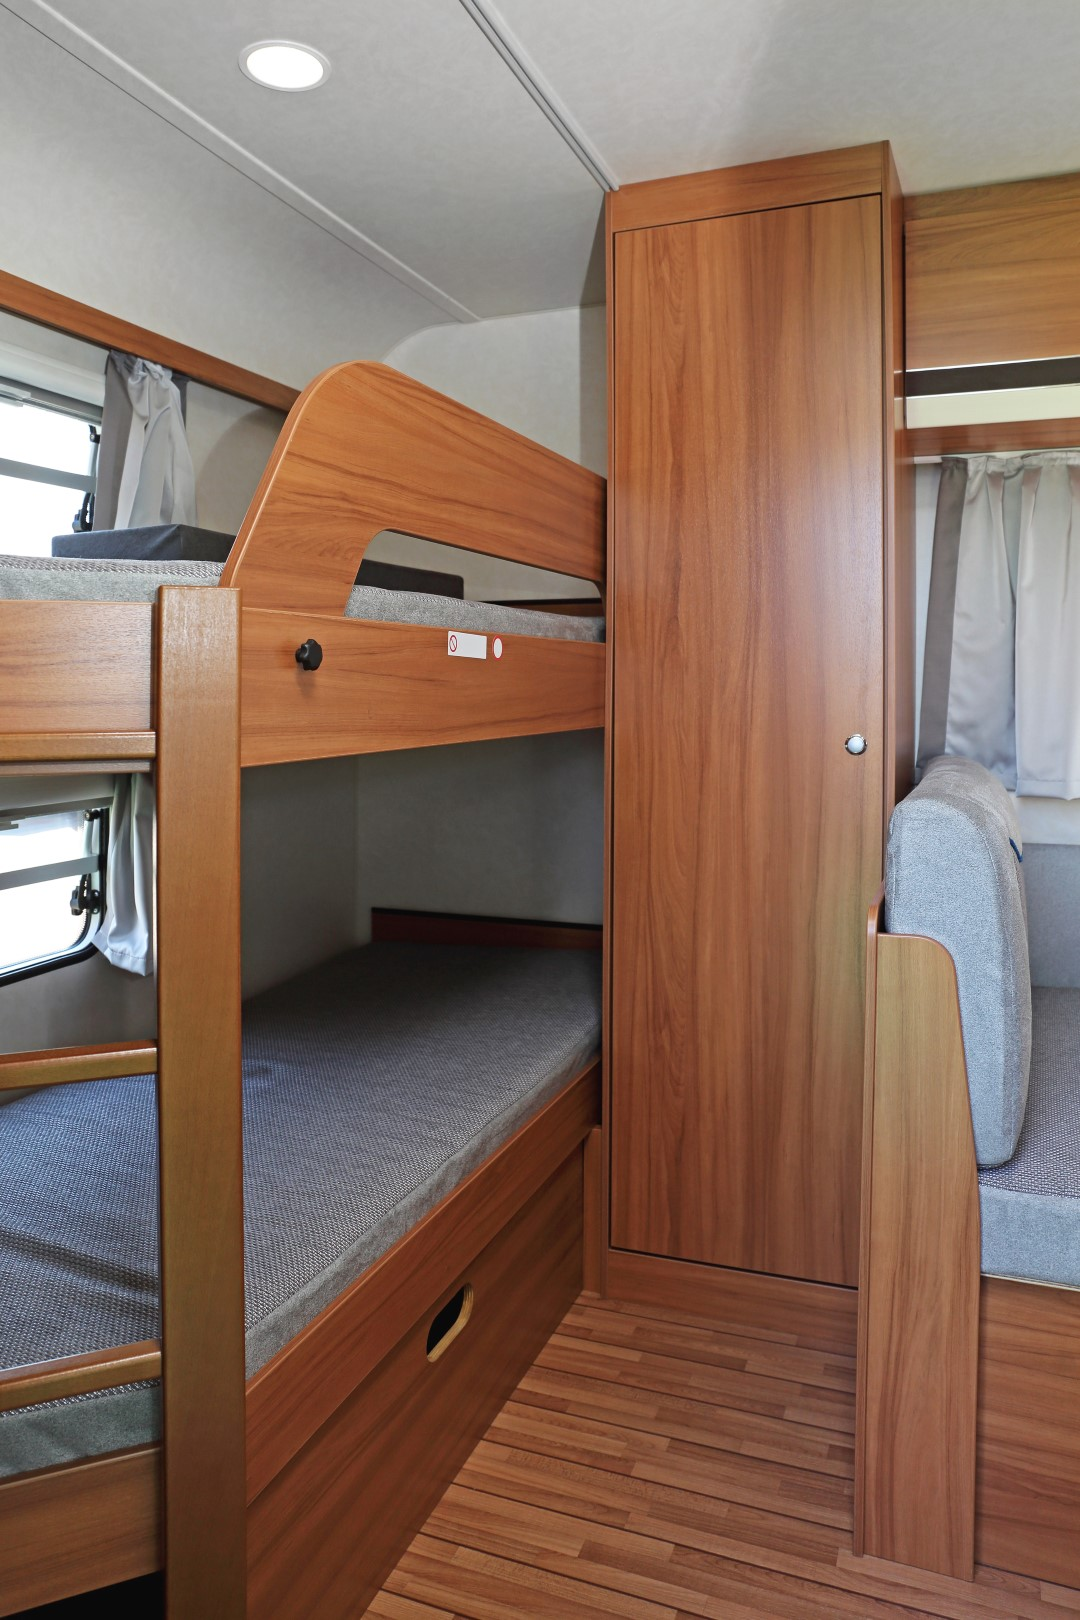 View of bunkbeds inside a bunkhouse-style RV